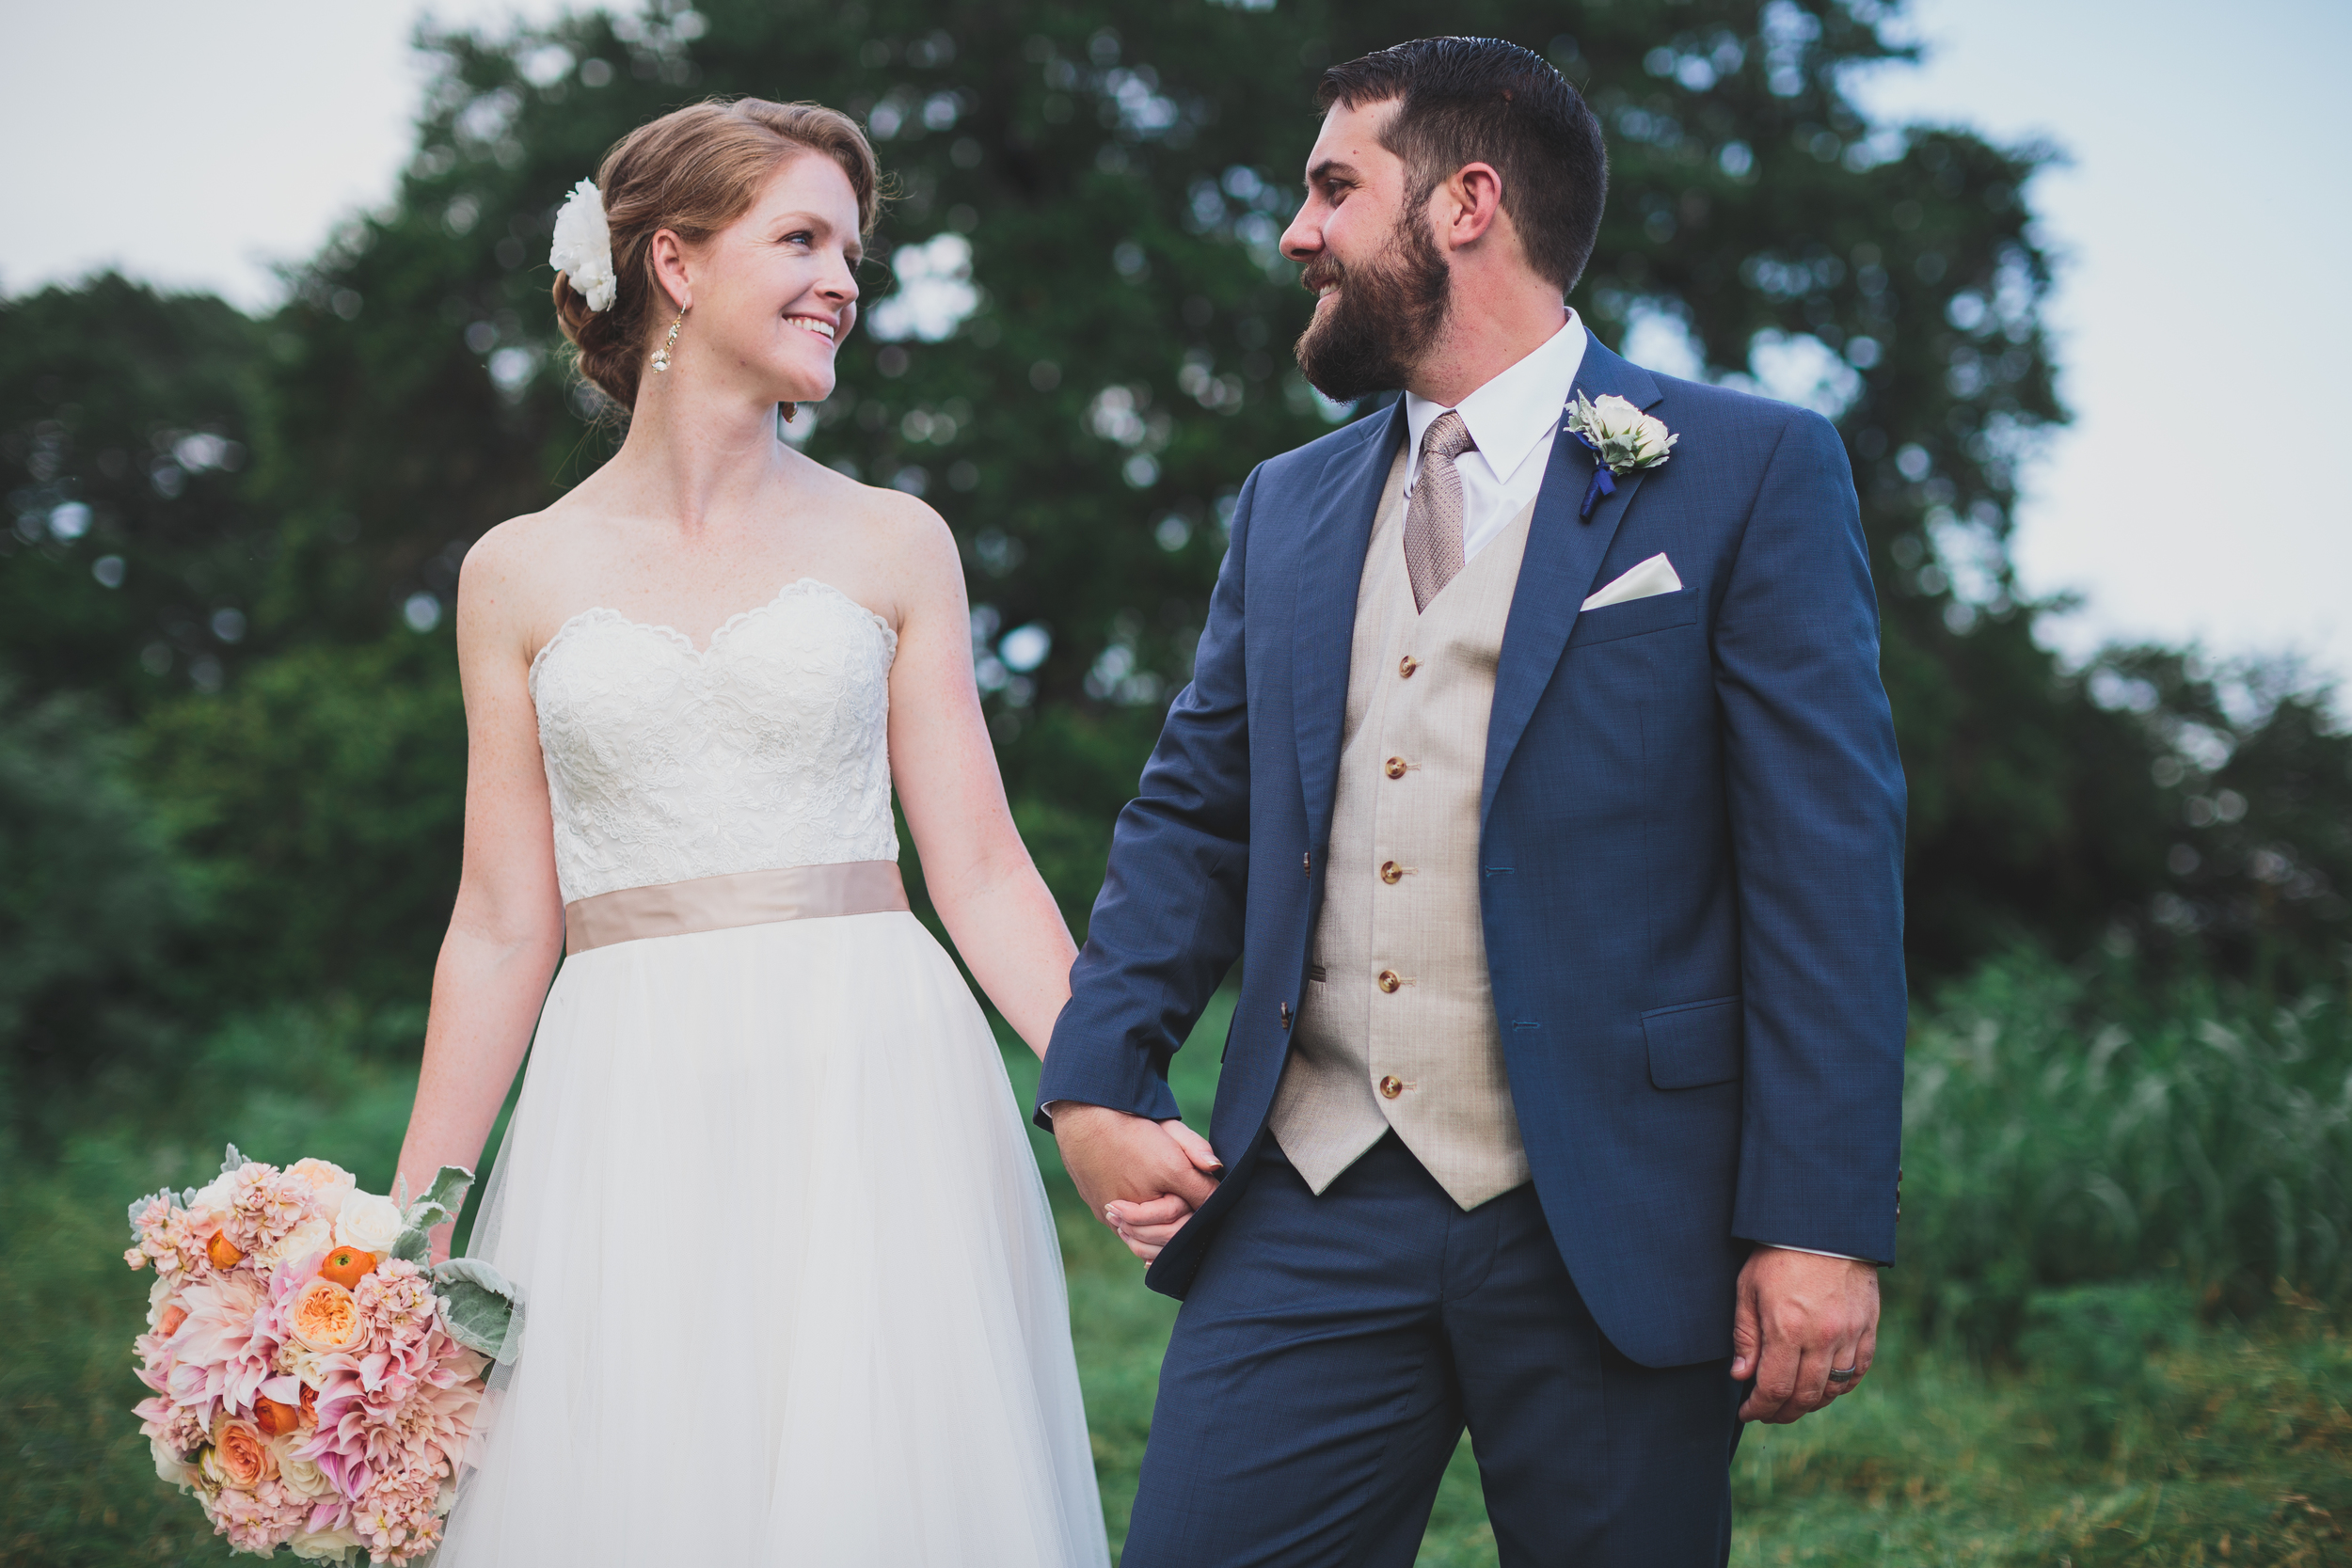 Brodie Homestead Wedding in Austin Texas. Kelly Costello Photography.